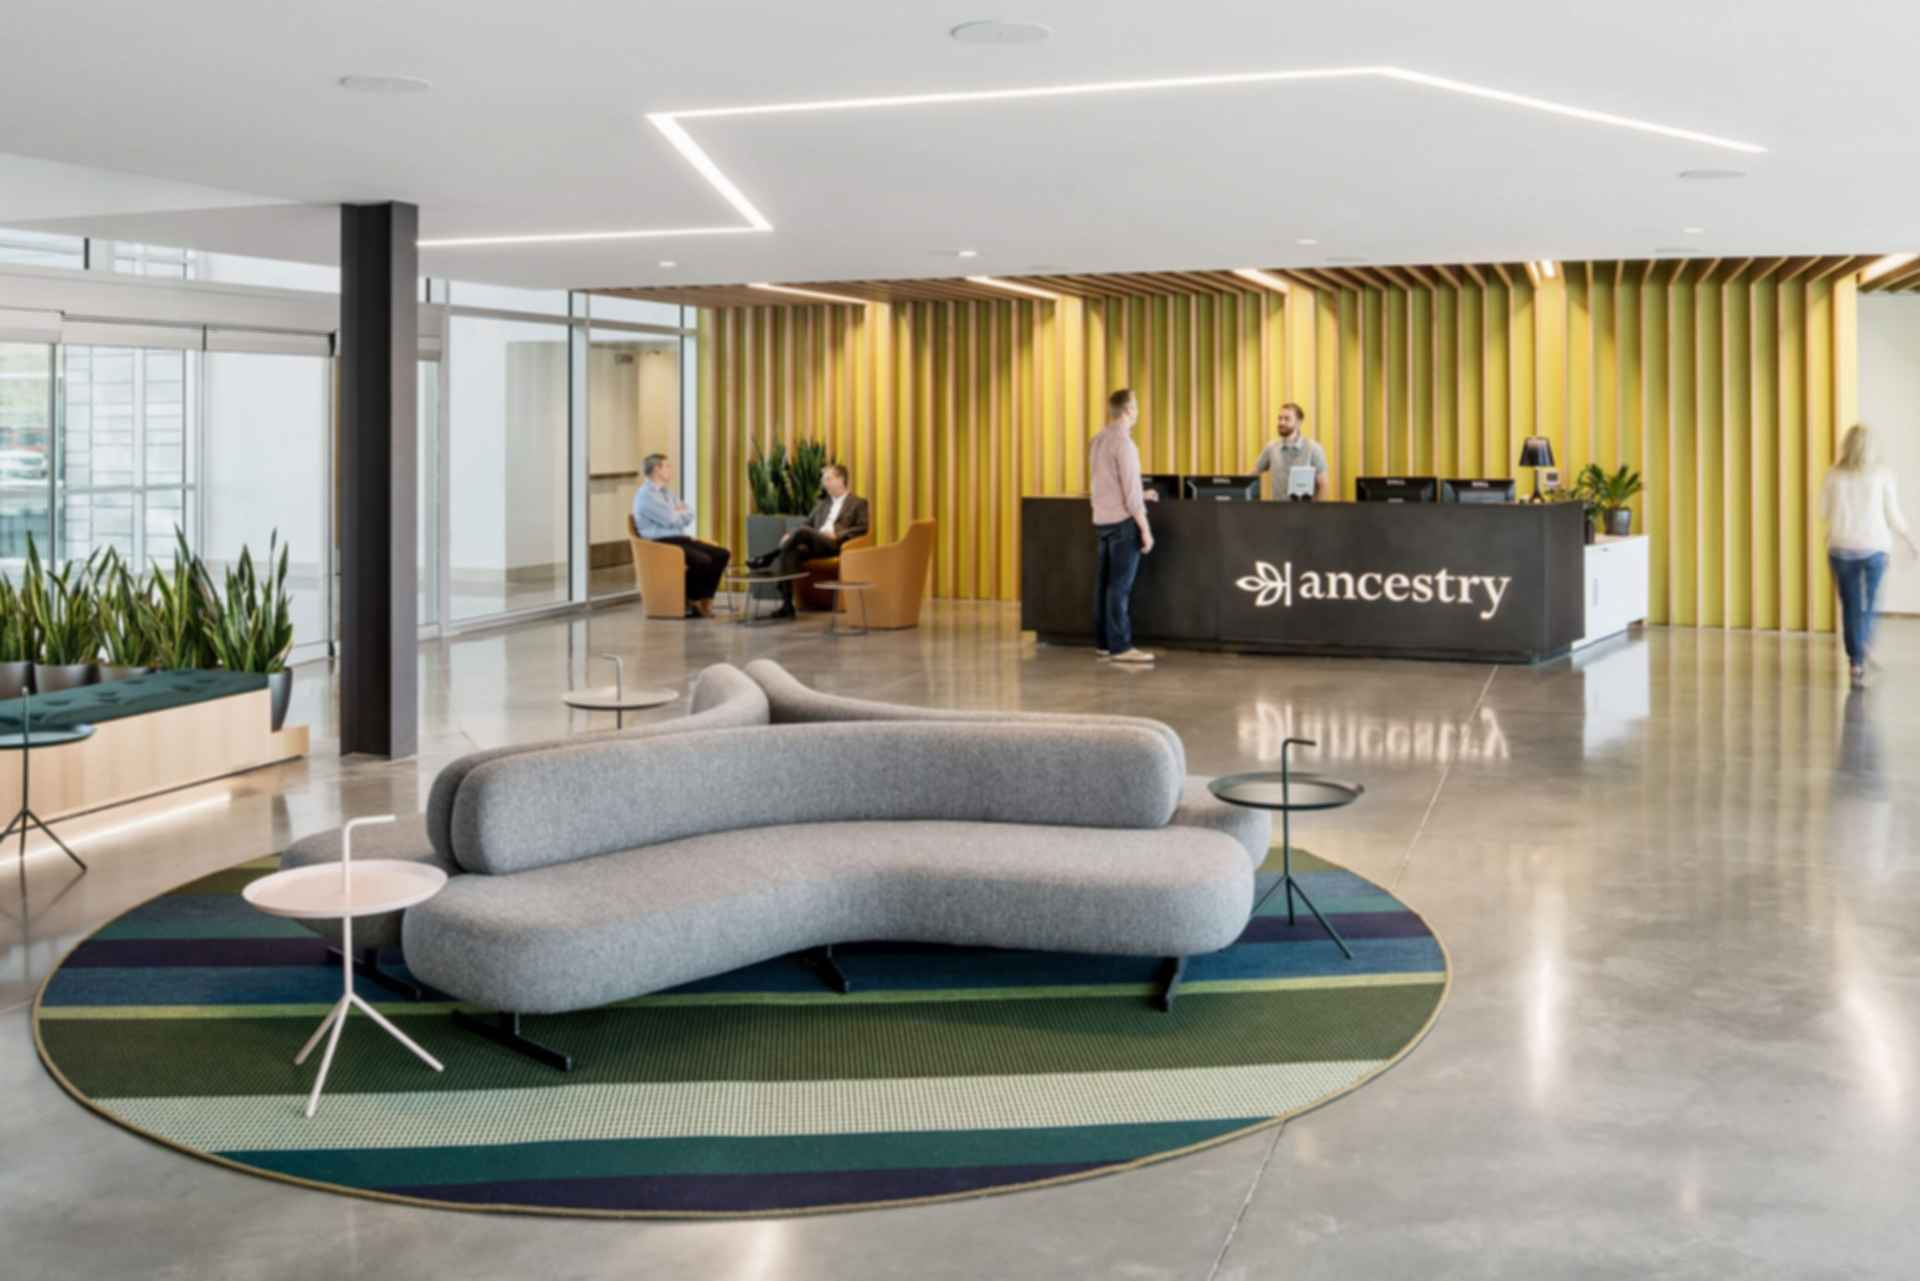 Ancestry Office - Reception